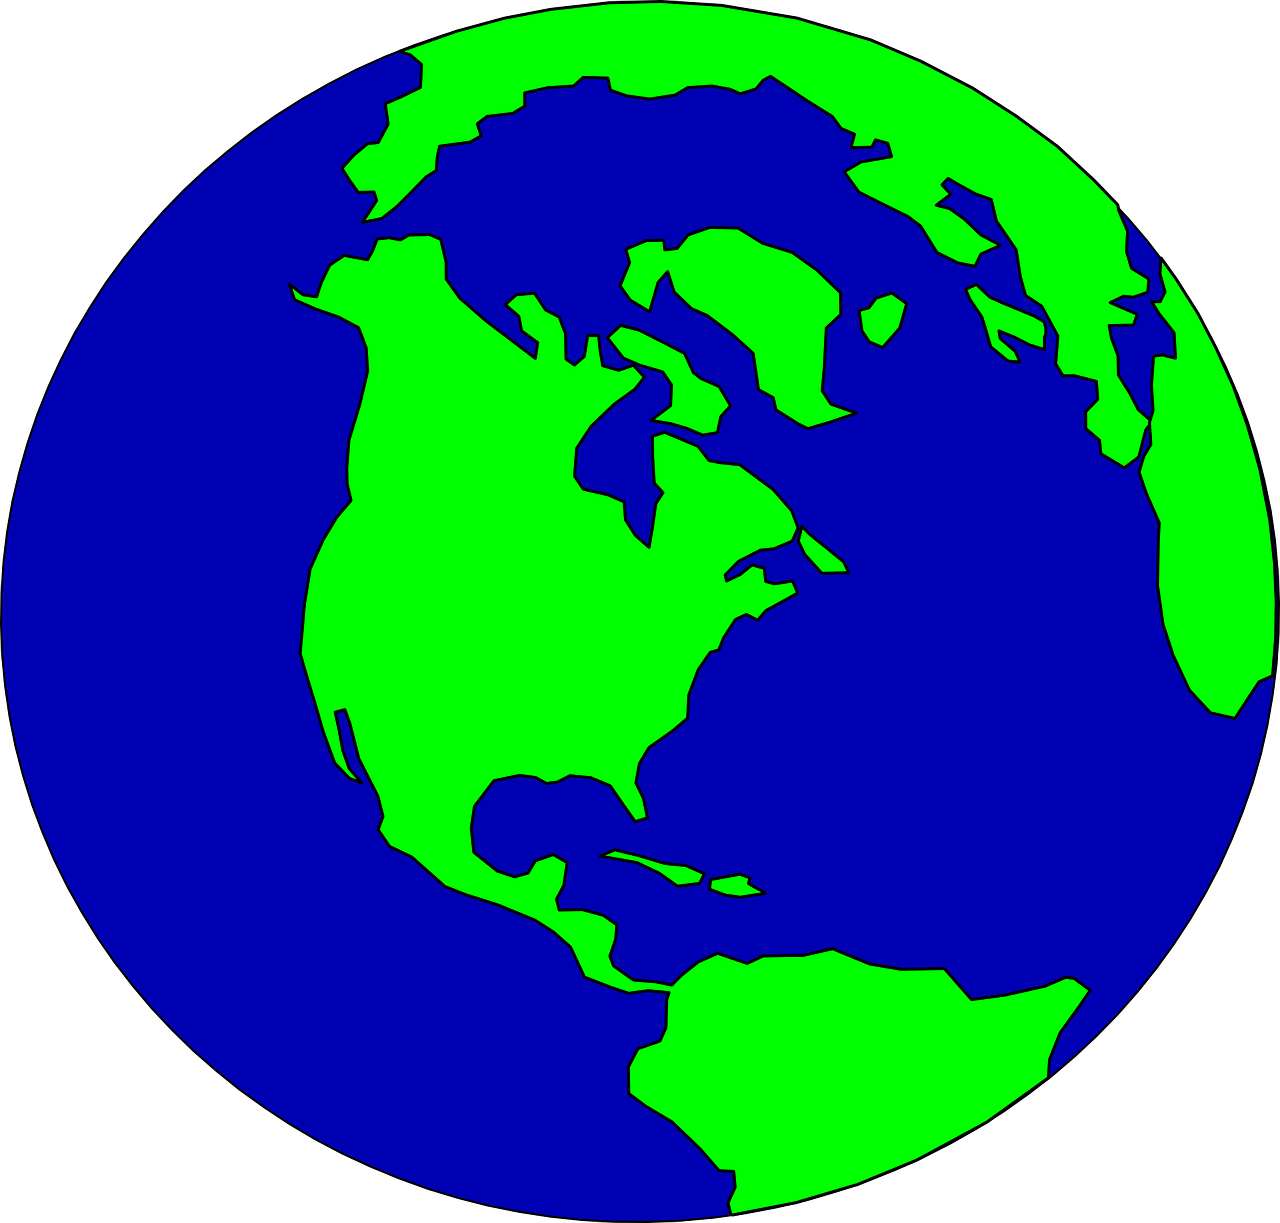 Planet clipart explosion. Image globe png space